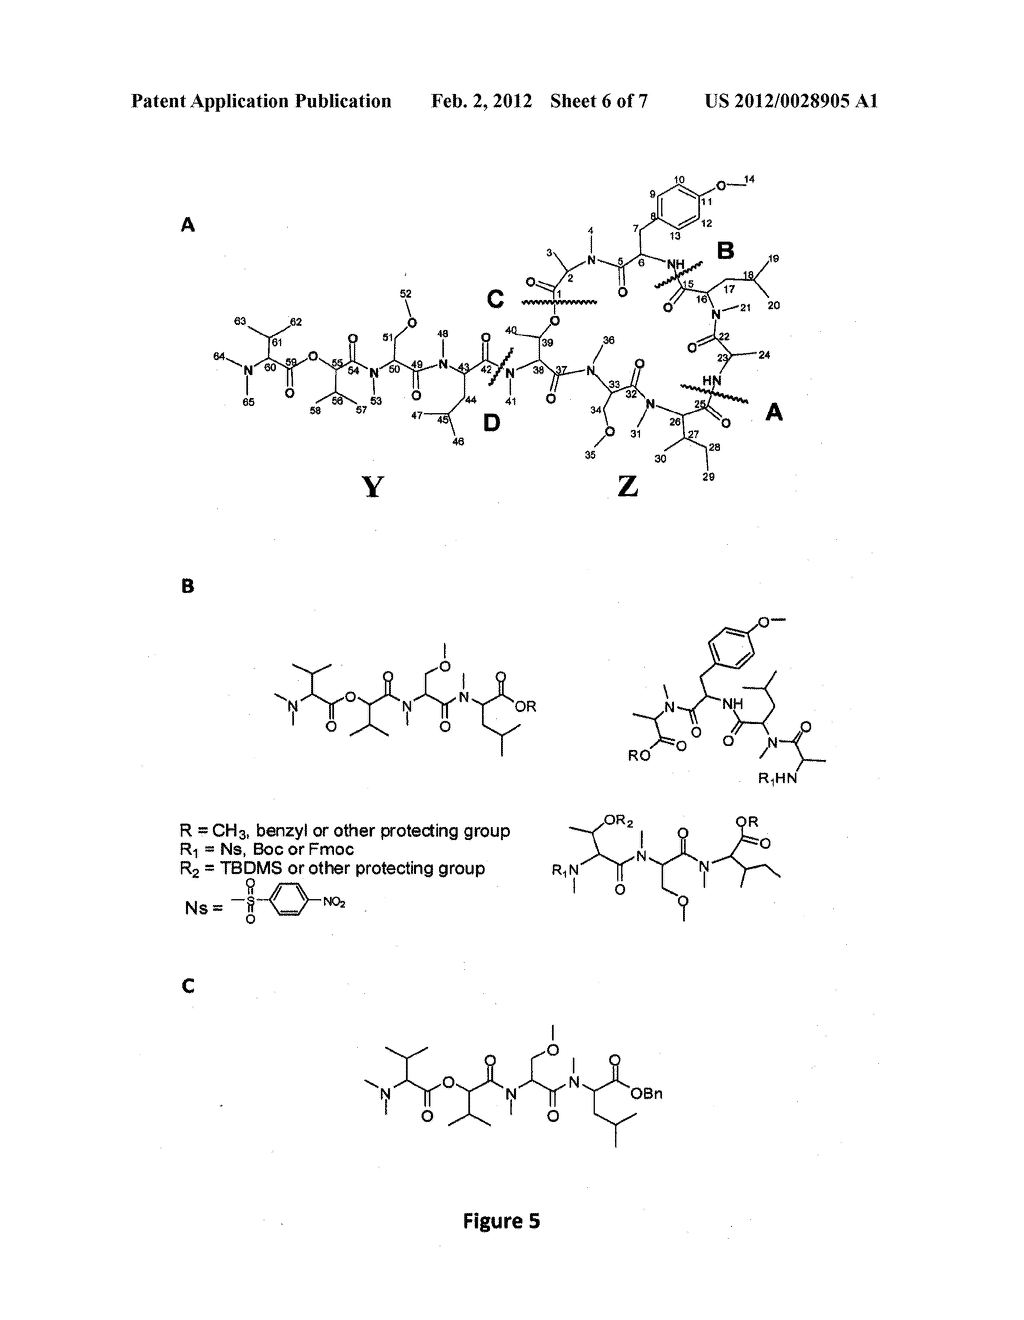 Isolation, Purification, and Structure Elucidation of the     Antiproliferative Compound Coibamide A - diagram, schematic, and image 07